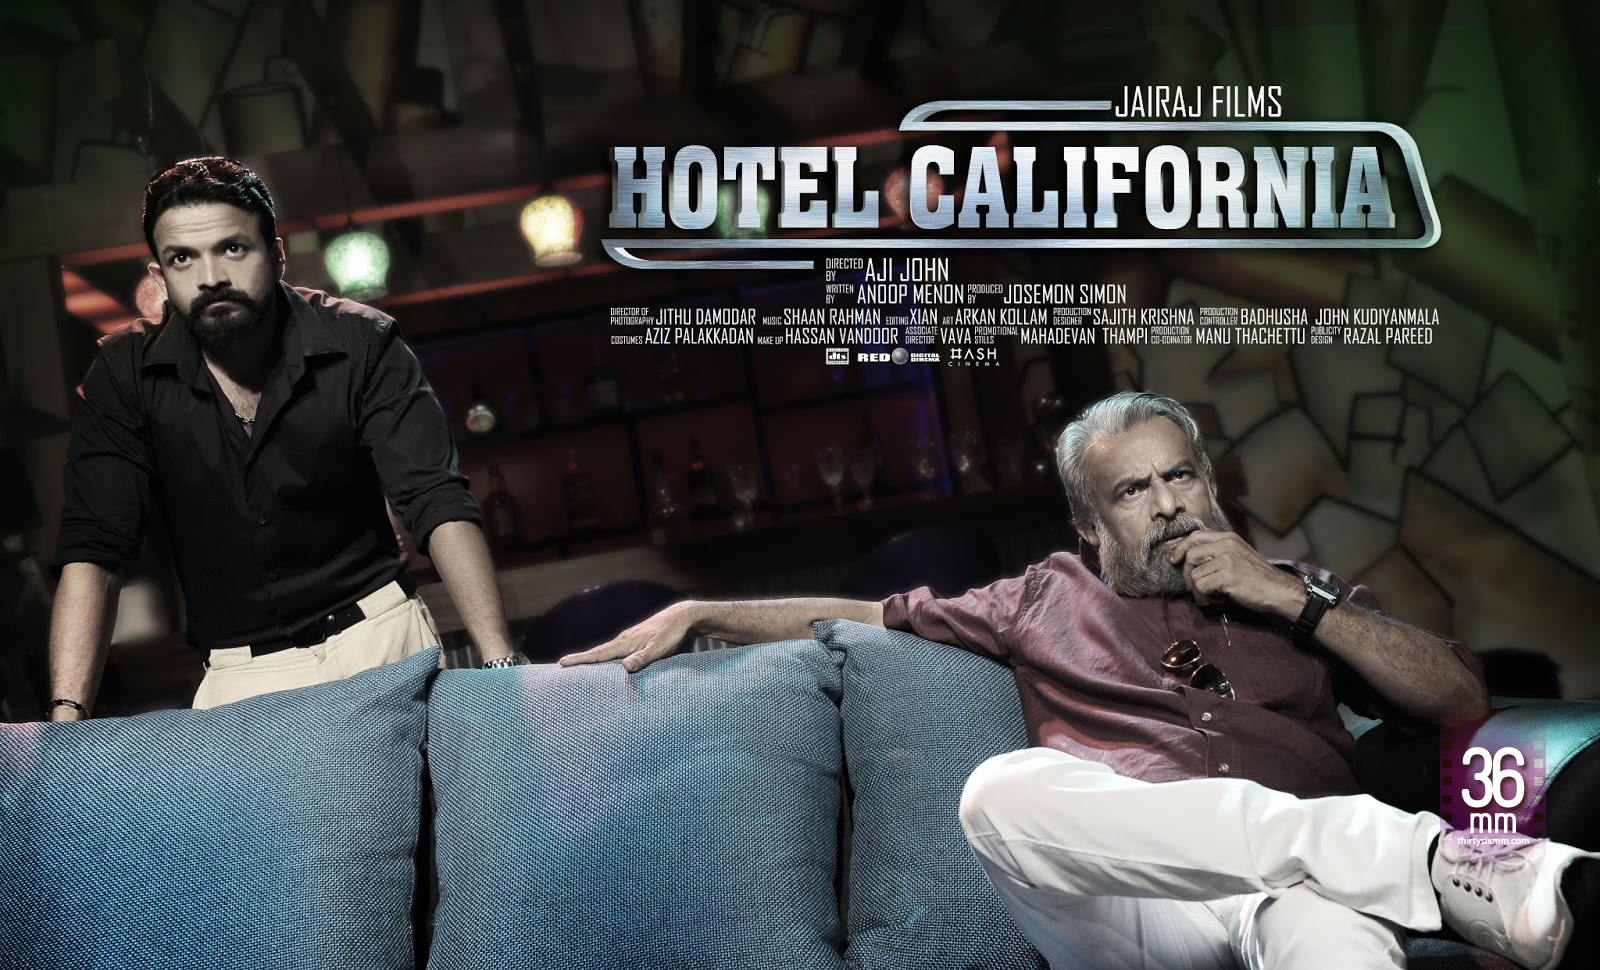 Hotel California Opens This Friday !!